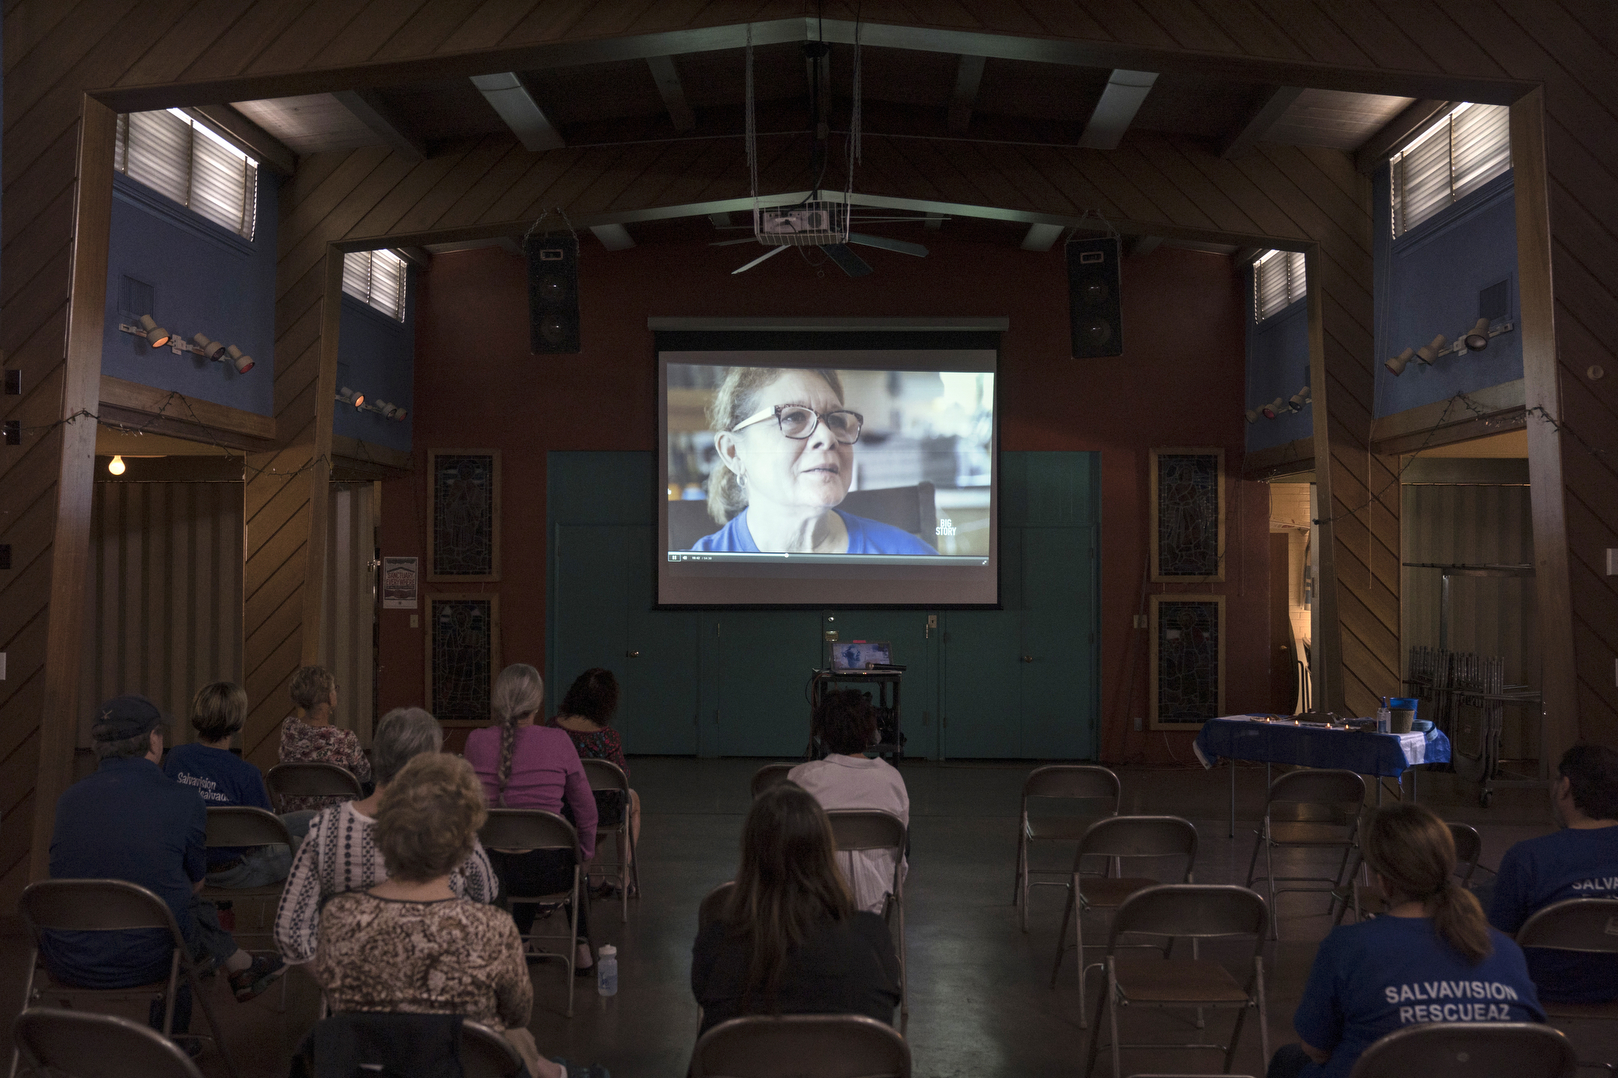 TUCSON, AZ - MARCH 14, 2020: Attendees watch a screening of the documentary film 'Deserted' by filmmaker Jason Motlagh at the Grace St. Paul's Episcopal Church in Tucson, AZ, during a fundraiser to help raise $7000 to cover the bond for a young Salvadoran man currently in ICE detention on March 14, 2020.   In 1980 19-year-old Dora Rodriguez, from El Salvador, made the difficult journey of crossing into the US near Lukeville, AZ on foot. Of the 26 individuals she crossed the Sonoran desert with 13 died in the gruelling heat, one of the pre-eminent events that led to the Sanctuary Movement. Dora eventually naturalised in the US and started an advocacy group, Salvavision Rescue Arizona, to support asylum-seekers. On a weekly basis Dora visits asylum seekers in detention centres, writes them letters, fundraises and brings donated supplies to the migrant camps on the Mexican side of the US - Mexico border.  Photo by Kitra Cahana/MAPS for The Intercept